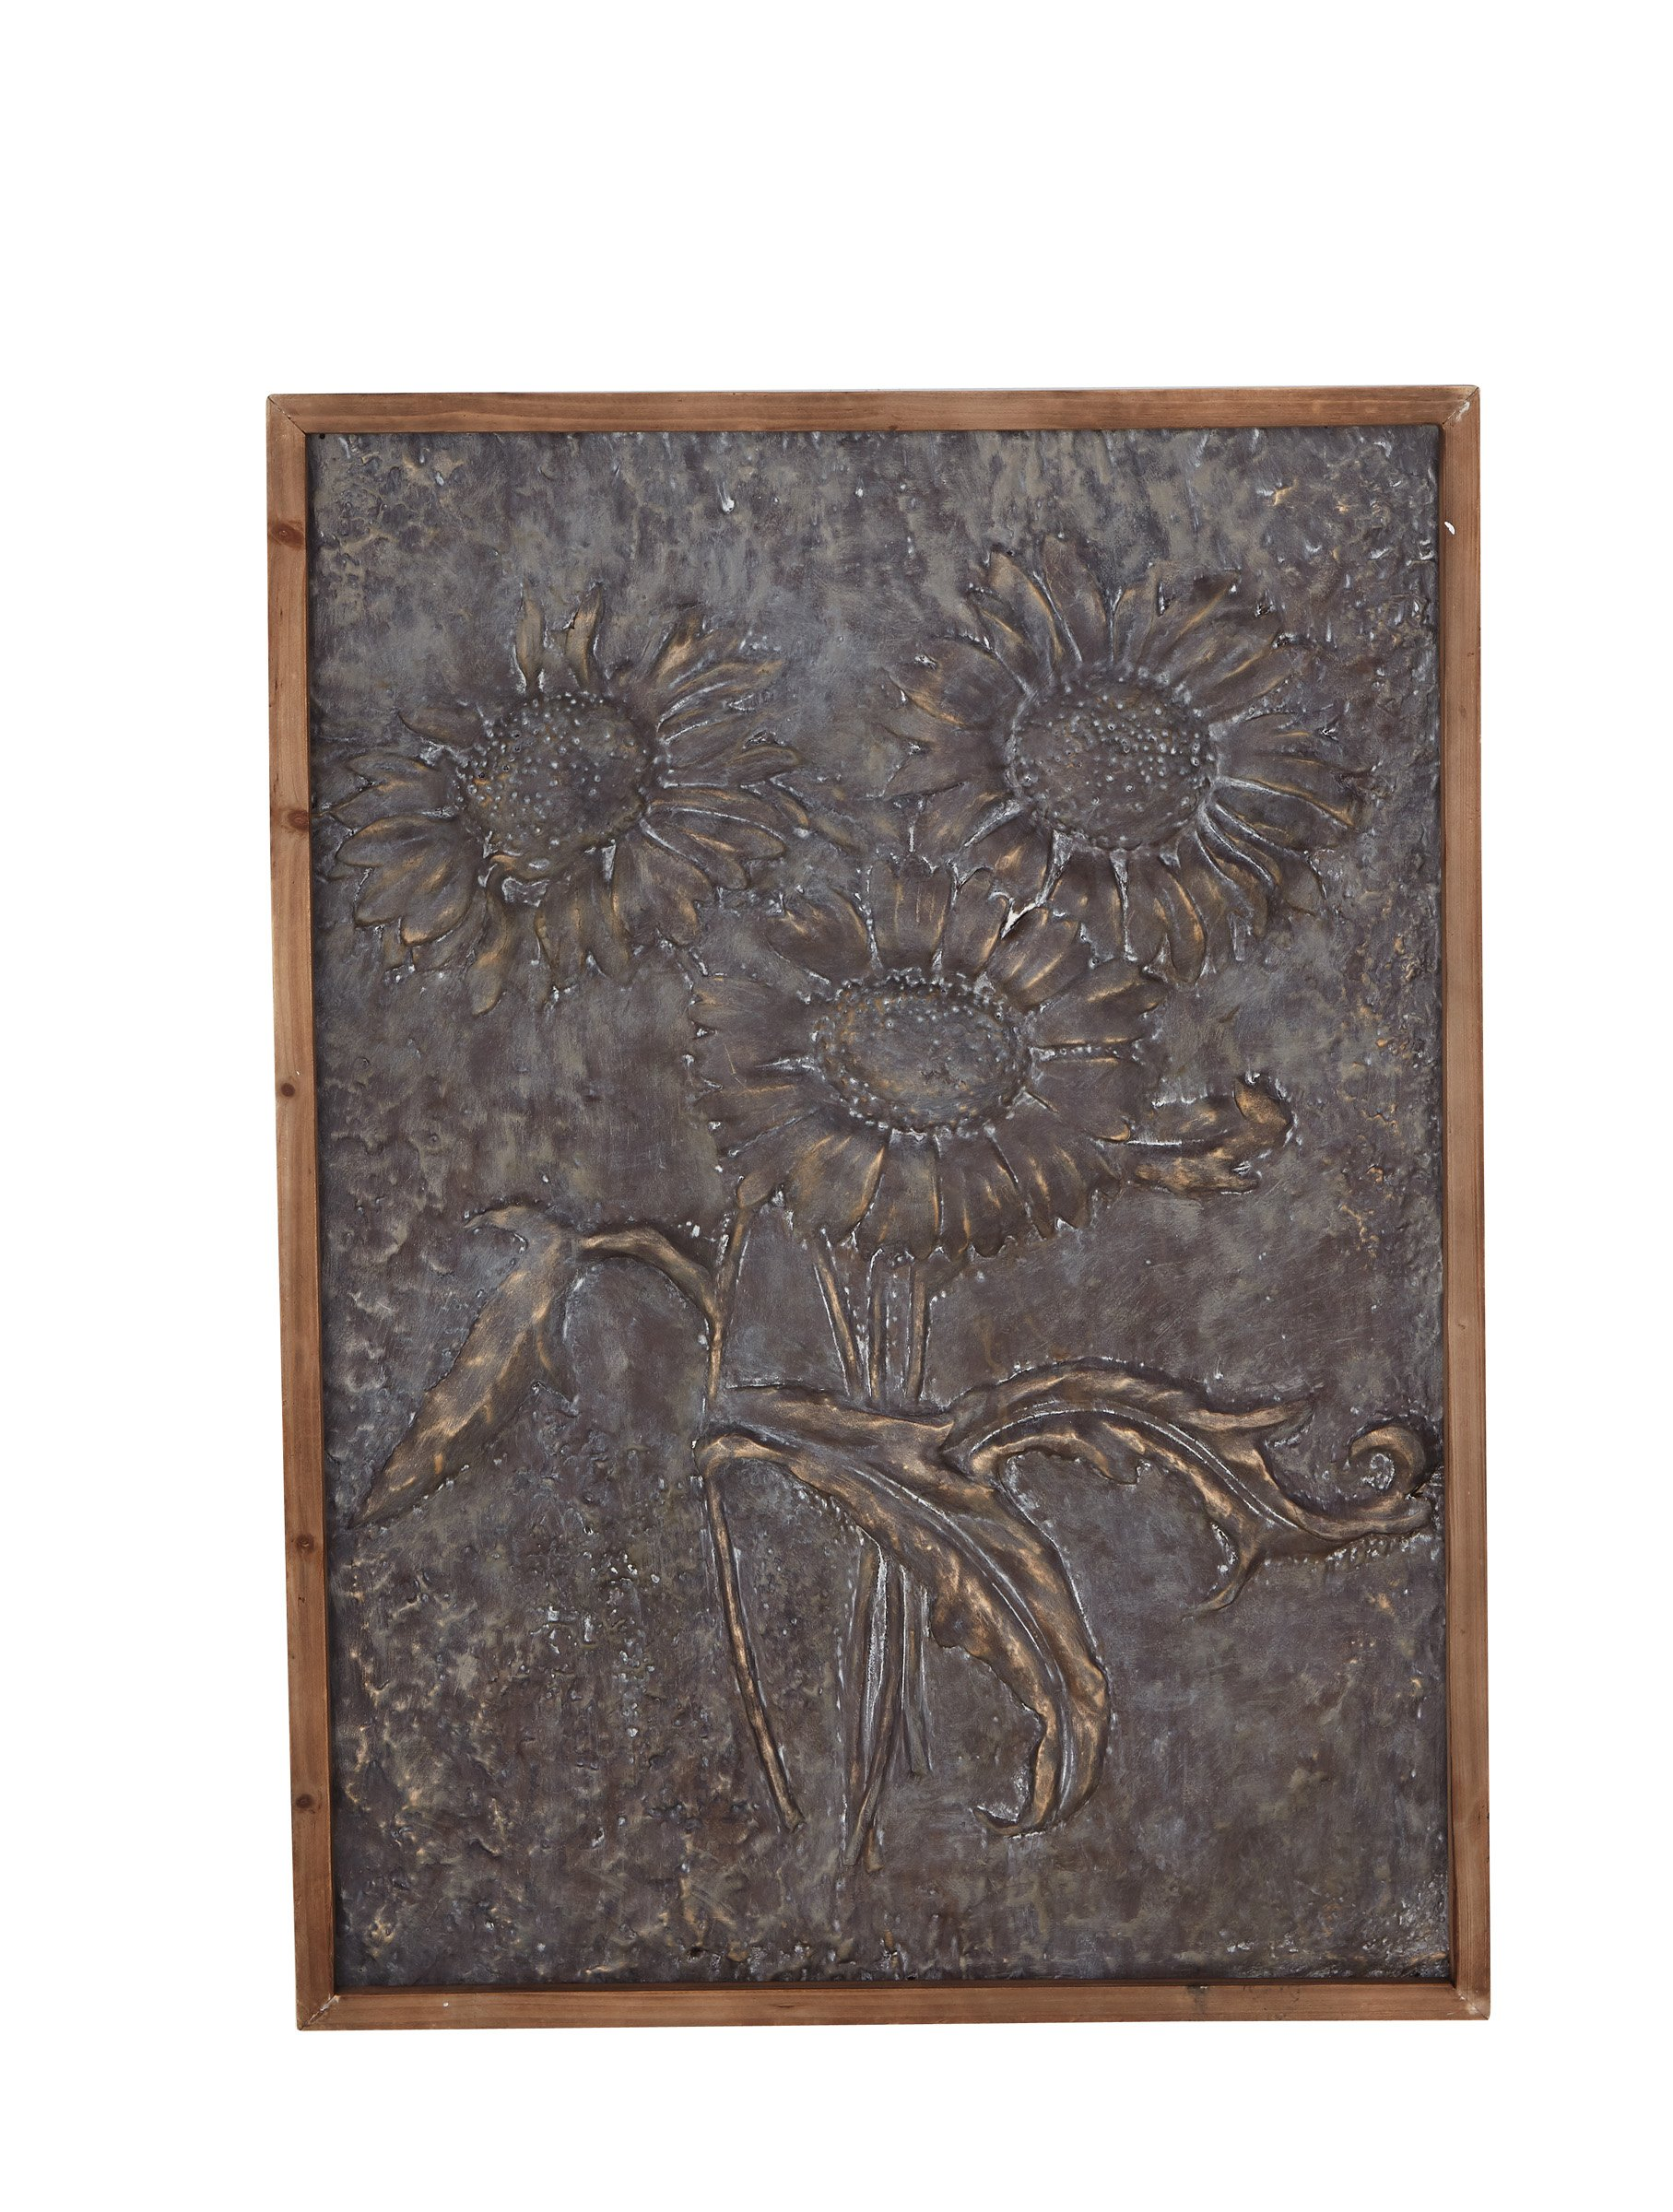 UMAC Wood and Burnished Bronzed Metal Sunflower Wall Decor Art, 40.5 Inches High x 29.5 inches Wide